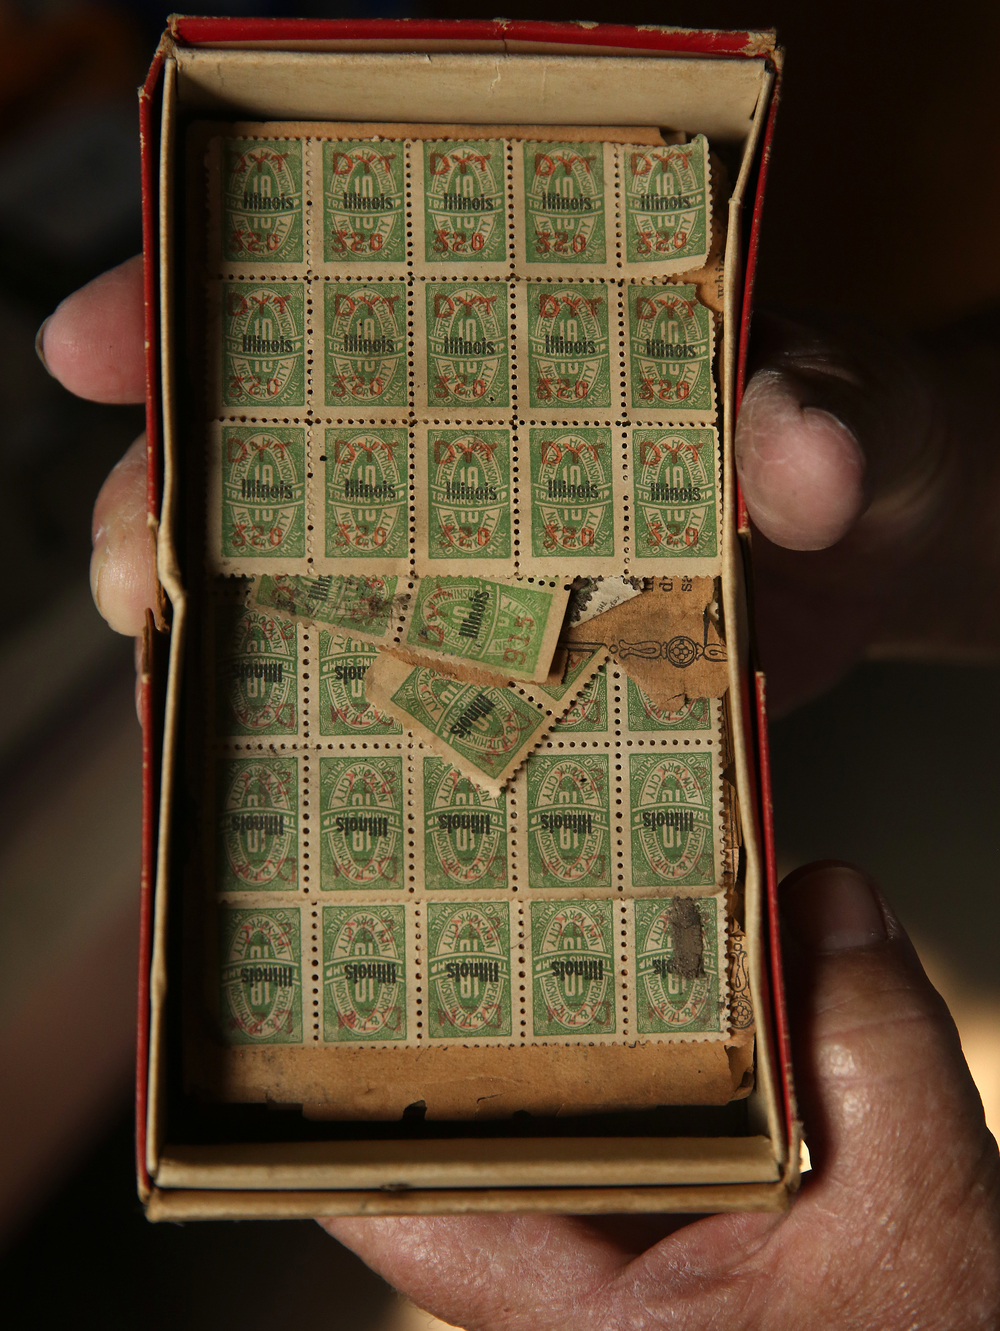 Rare S&H Green Stamps from 1916 (Sperry & Hutchinson first issued them in 1912) are held by Bill Shea Jr. in the main museum on Thursday, Oct. 1, 2015. David Spencer/The State Journal-Register